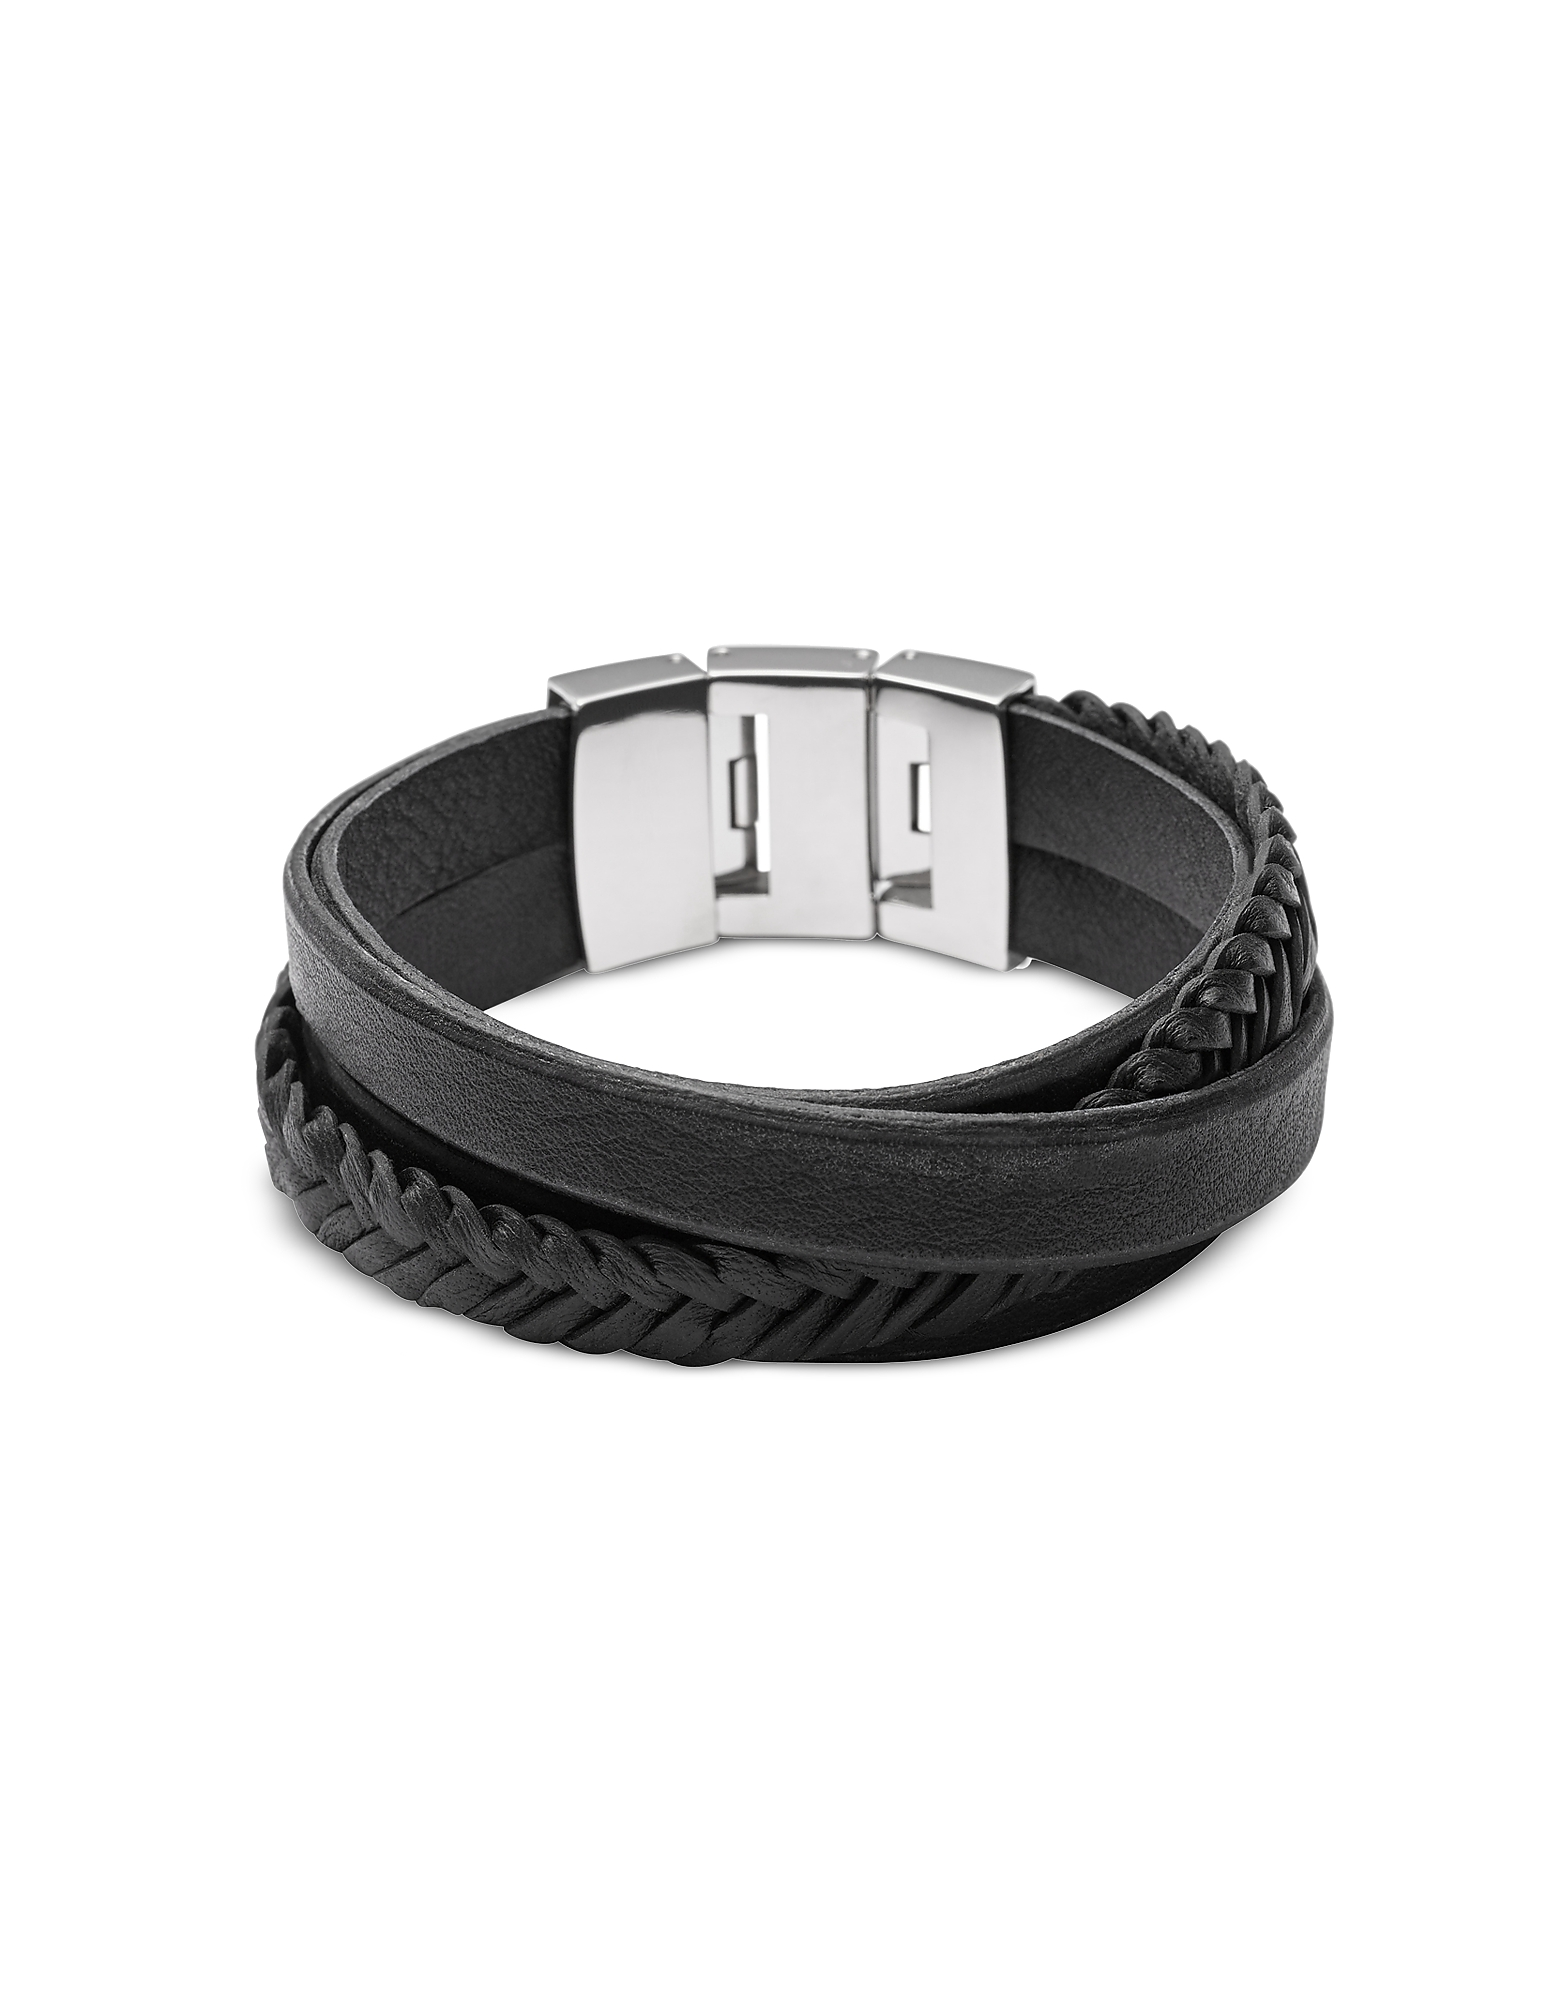 Black Braided and Smooth Leather Men's Wrap Bracelet